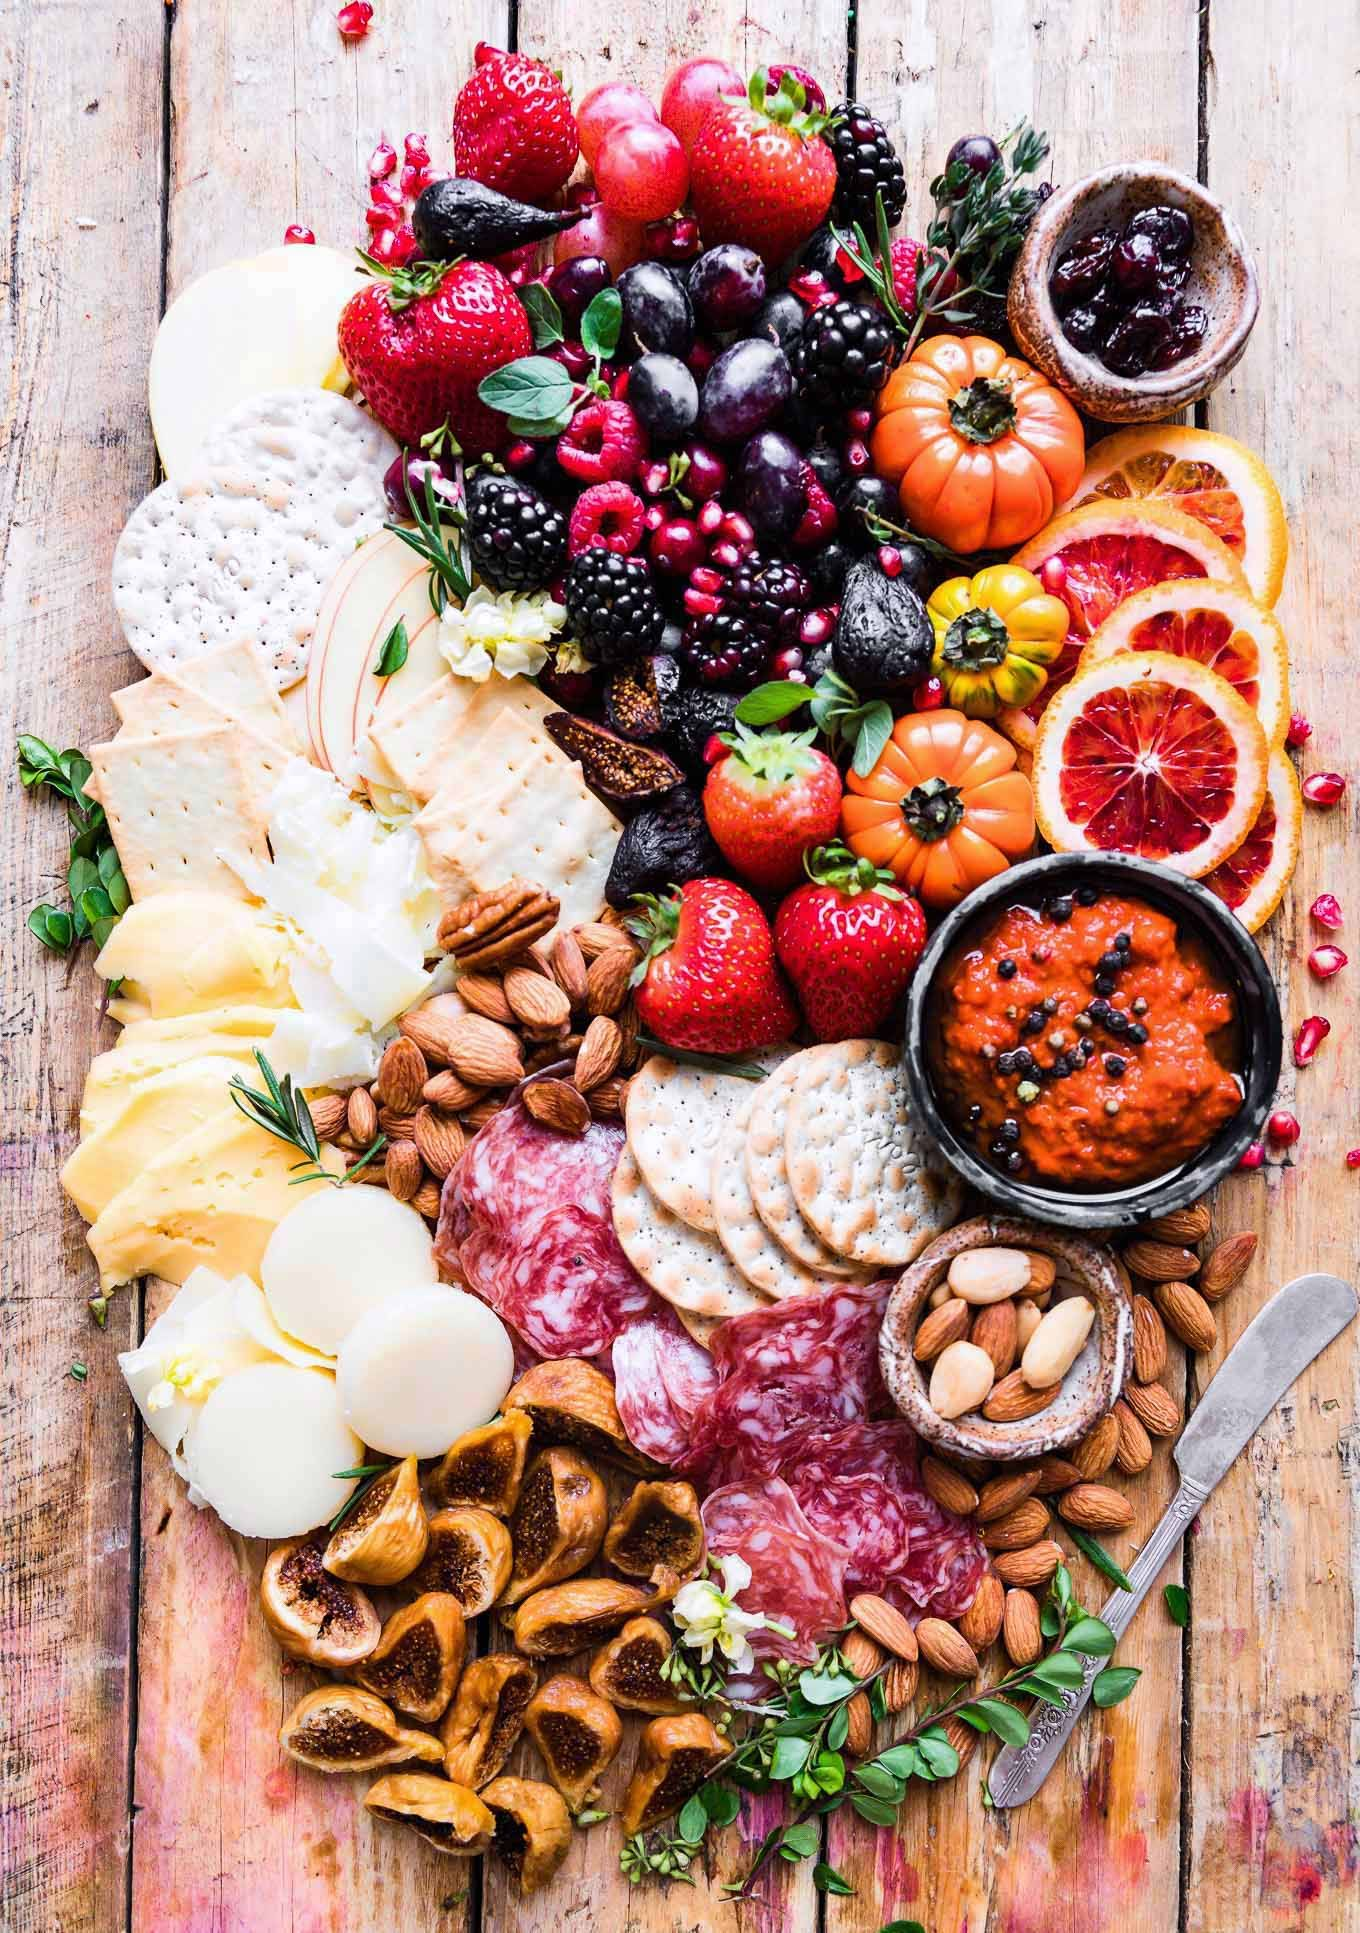 How To Host An Impromptu Wine And Cheese Party Cotter Crunch Recipe Wine And Cheese Party Cheese Party Charcuterie And Cheese Board